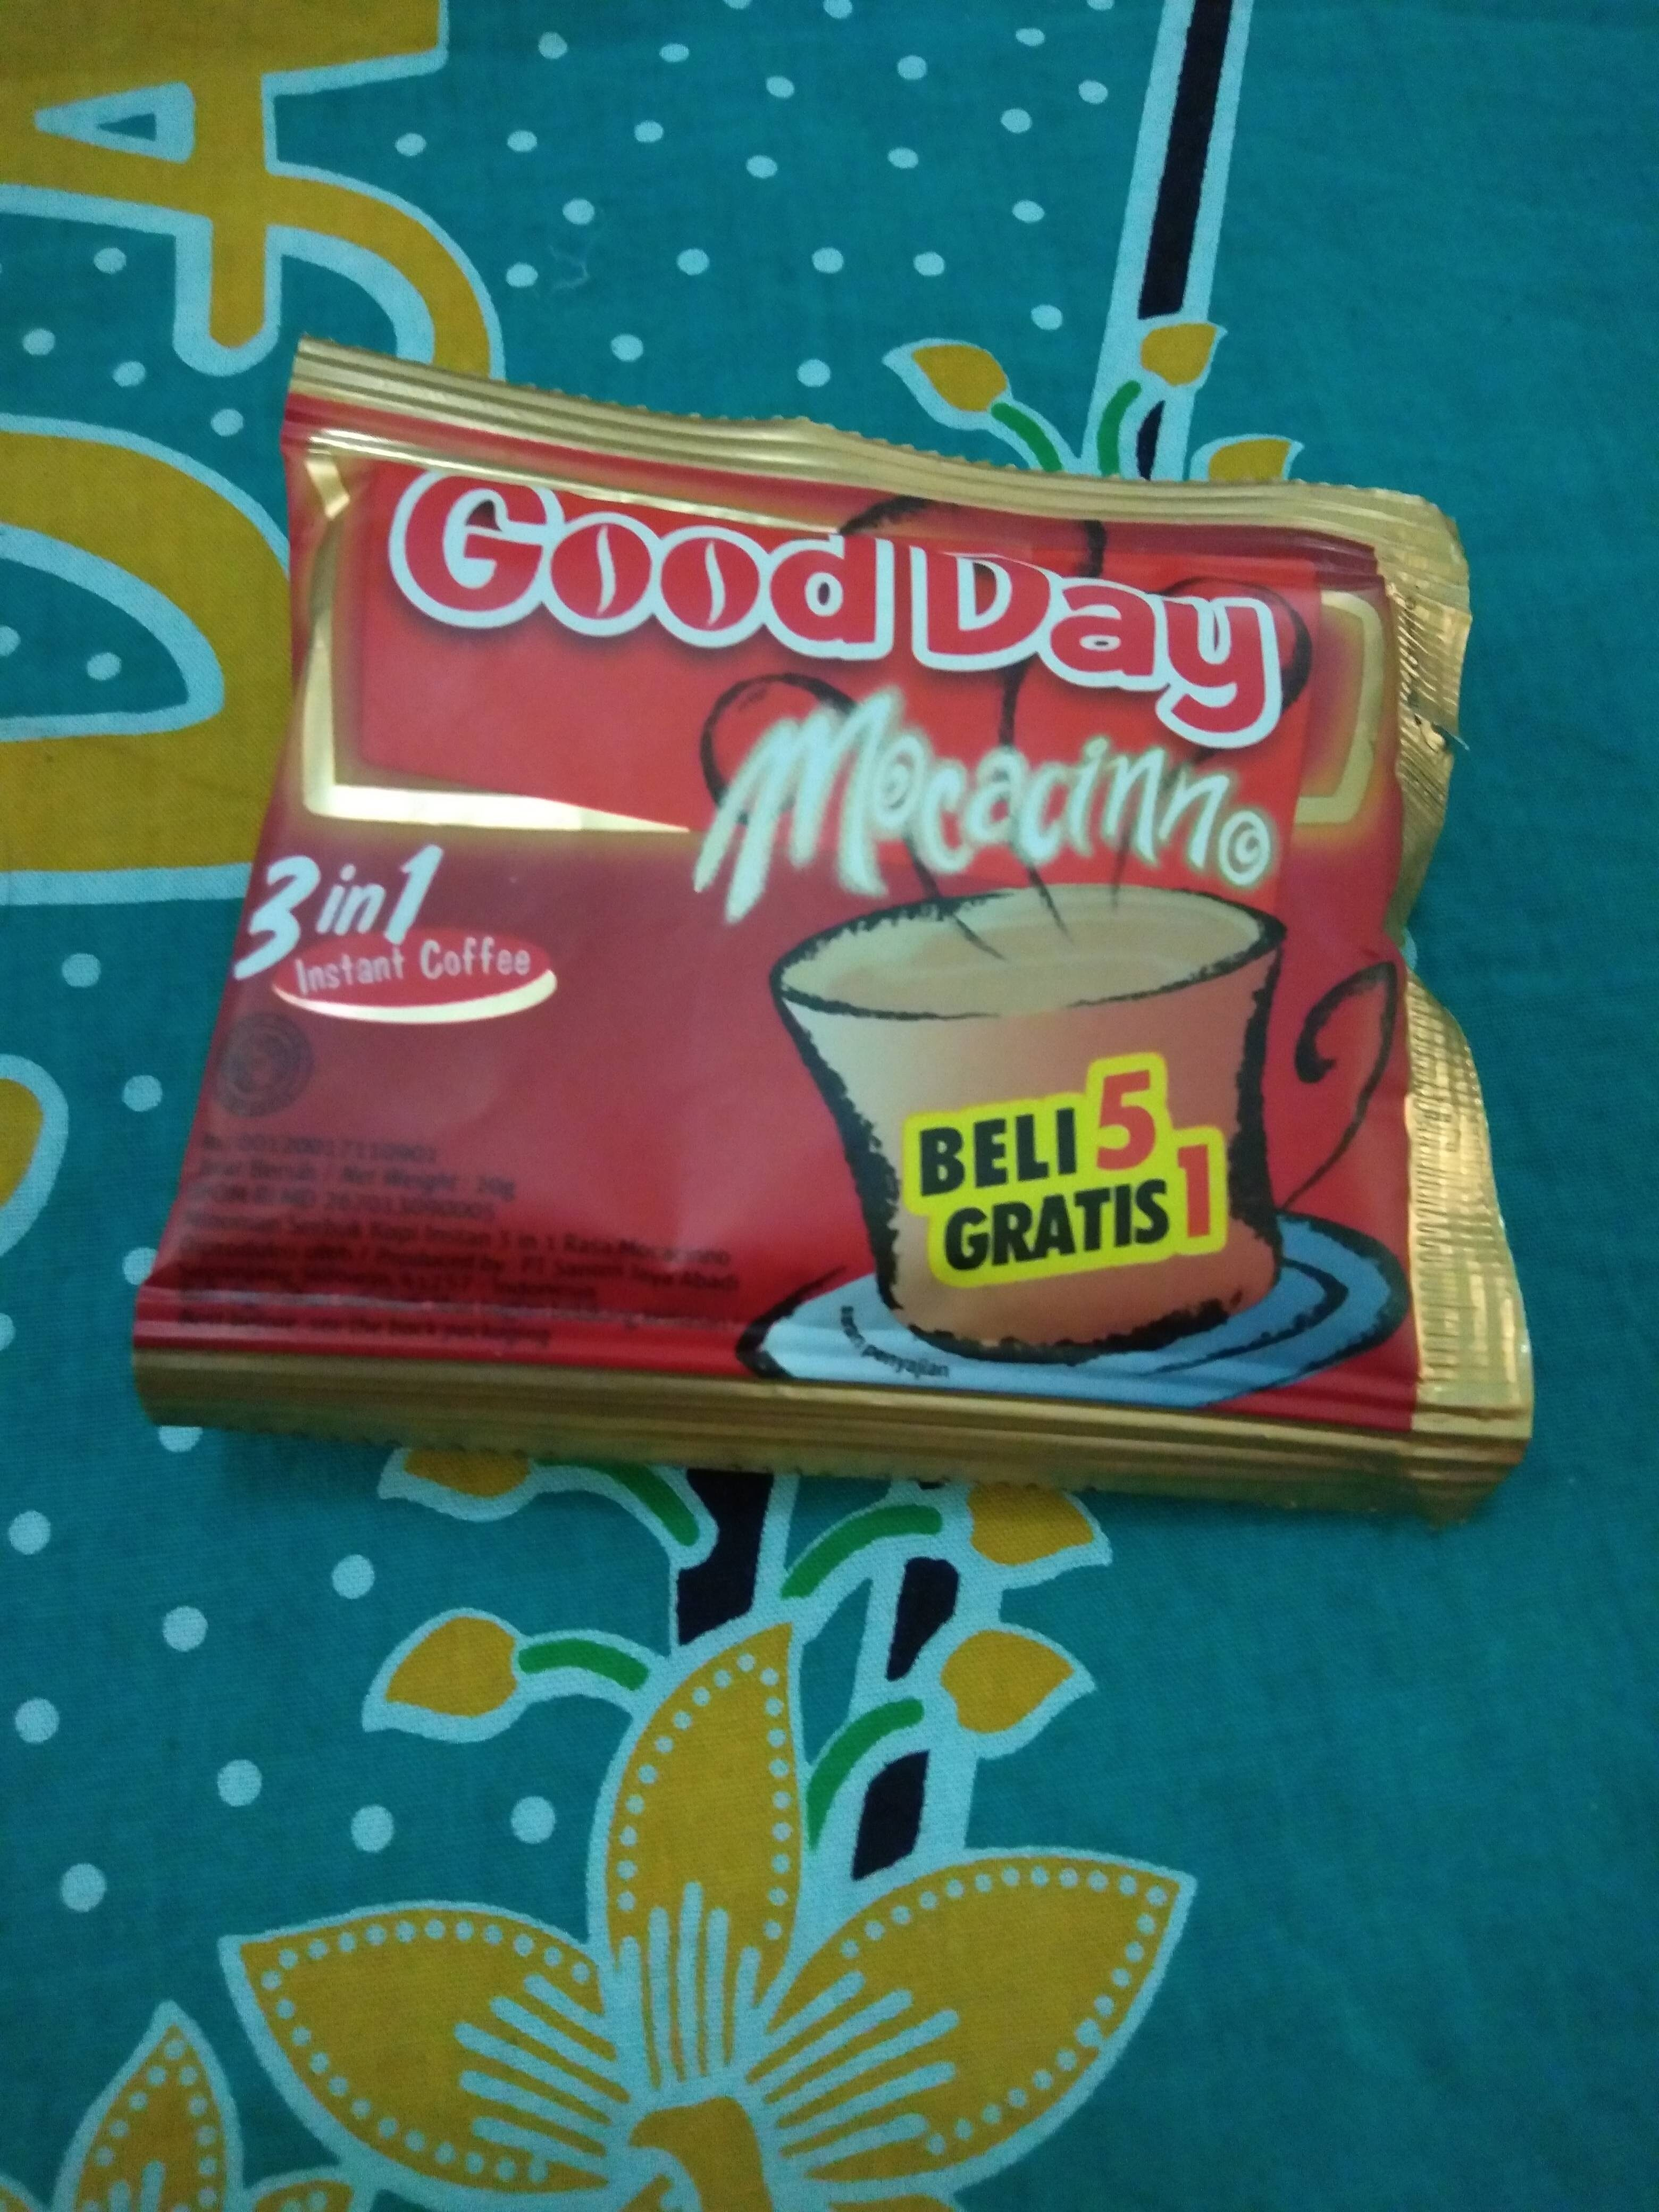 Good Day Mocacinno - Produk - id